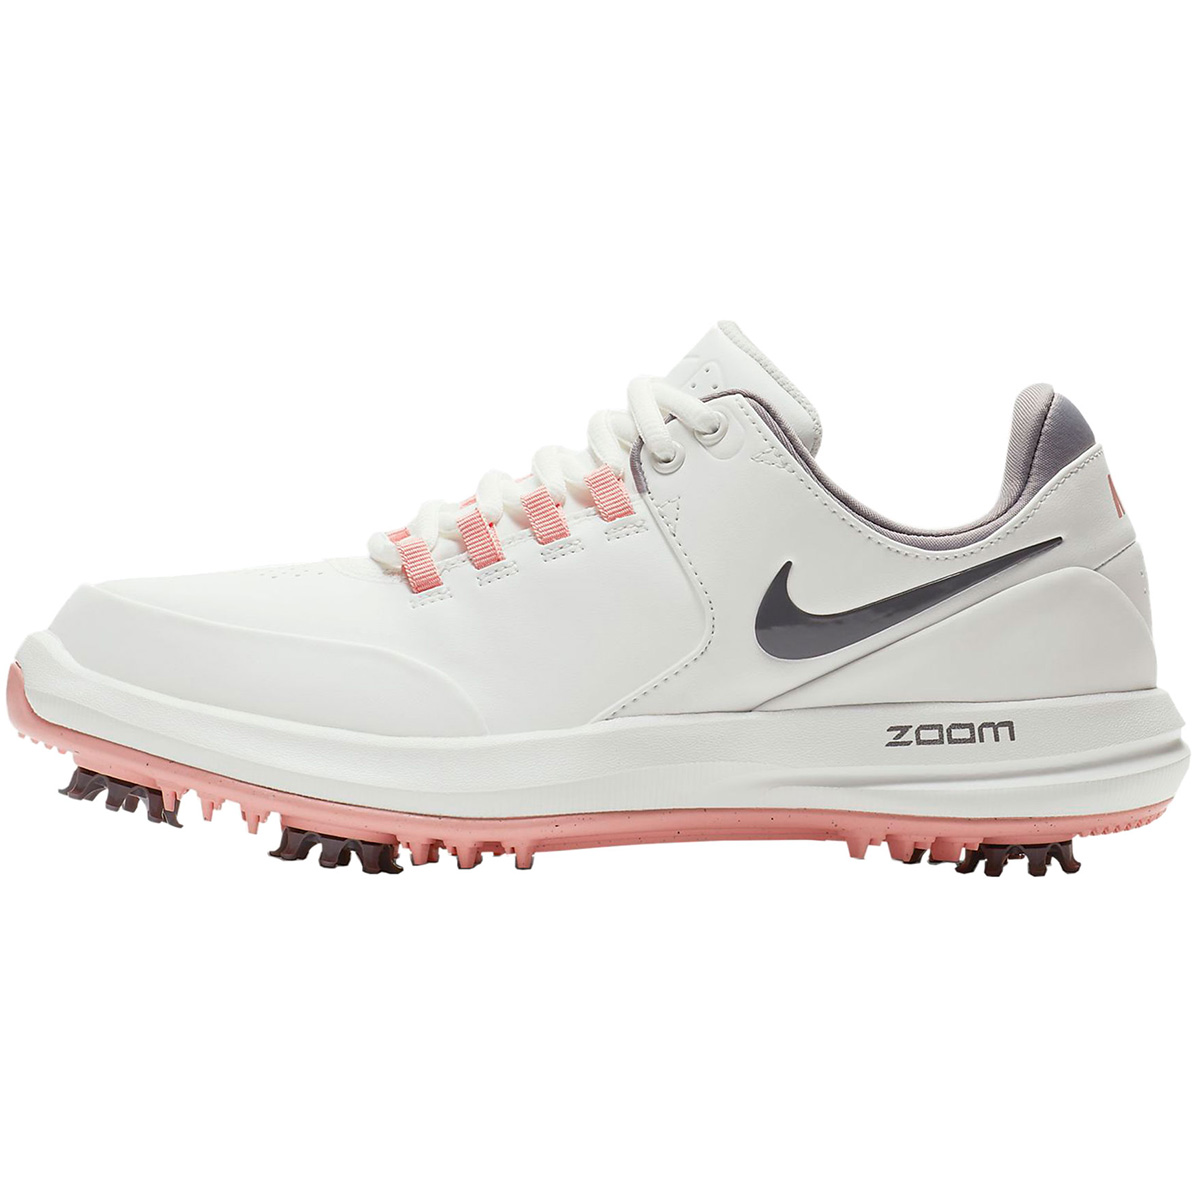 cepillo radical Tentación  Nike Golf Air Zoom Accurate Ladies Shoes from american golf